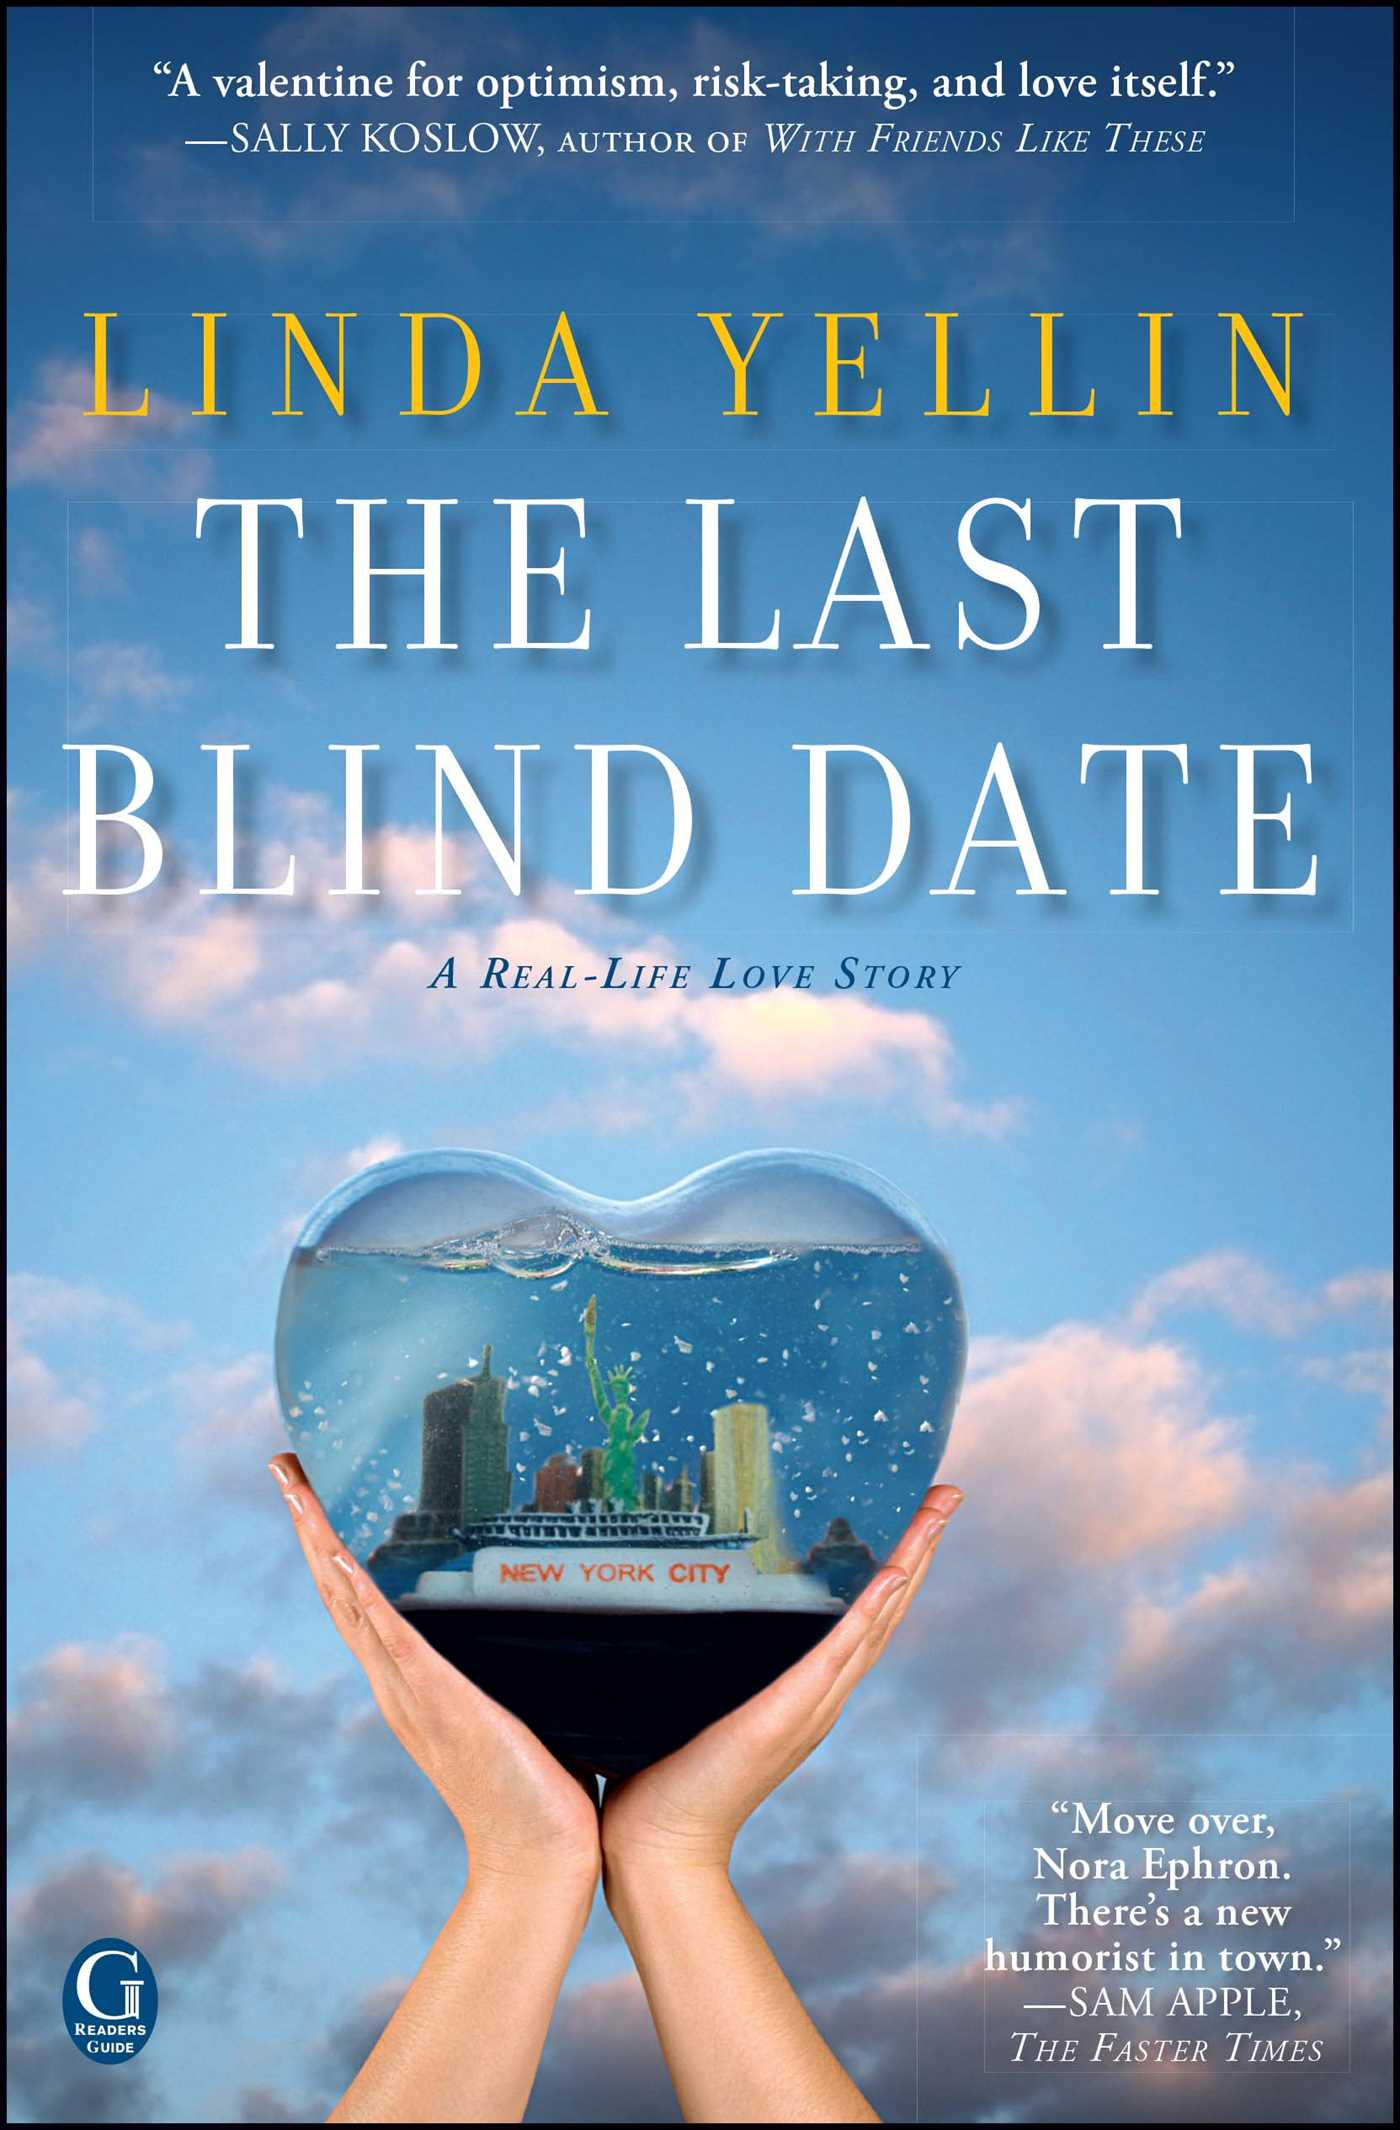 The last blind date 9781451625899 hr